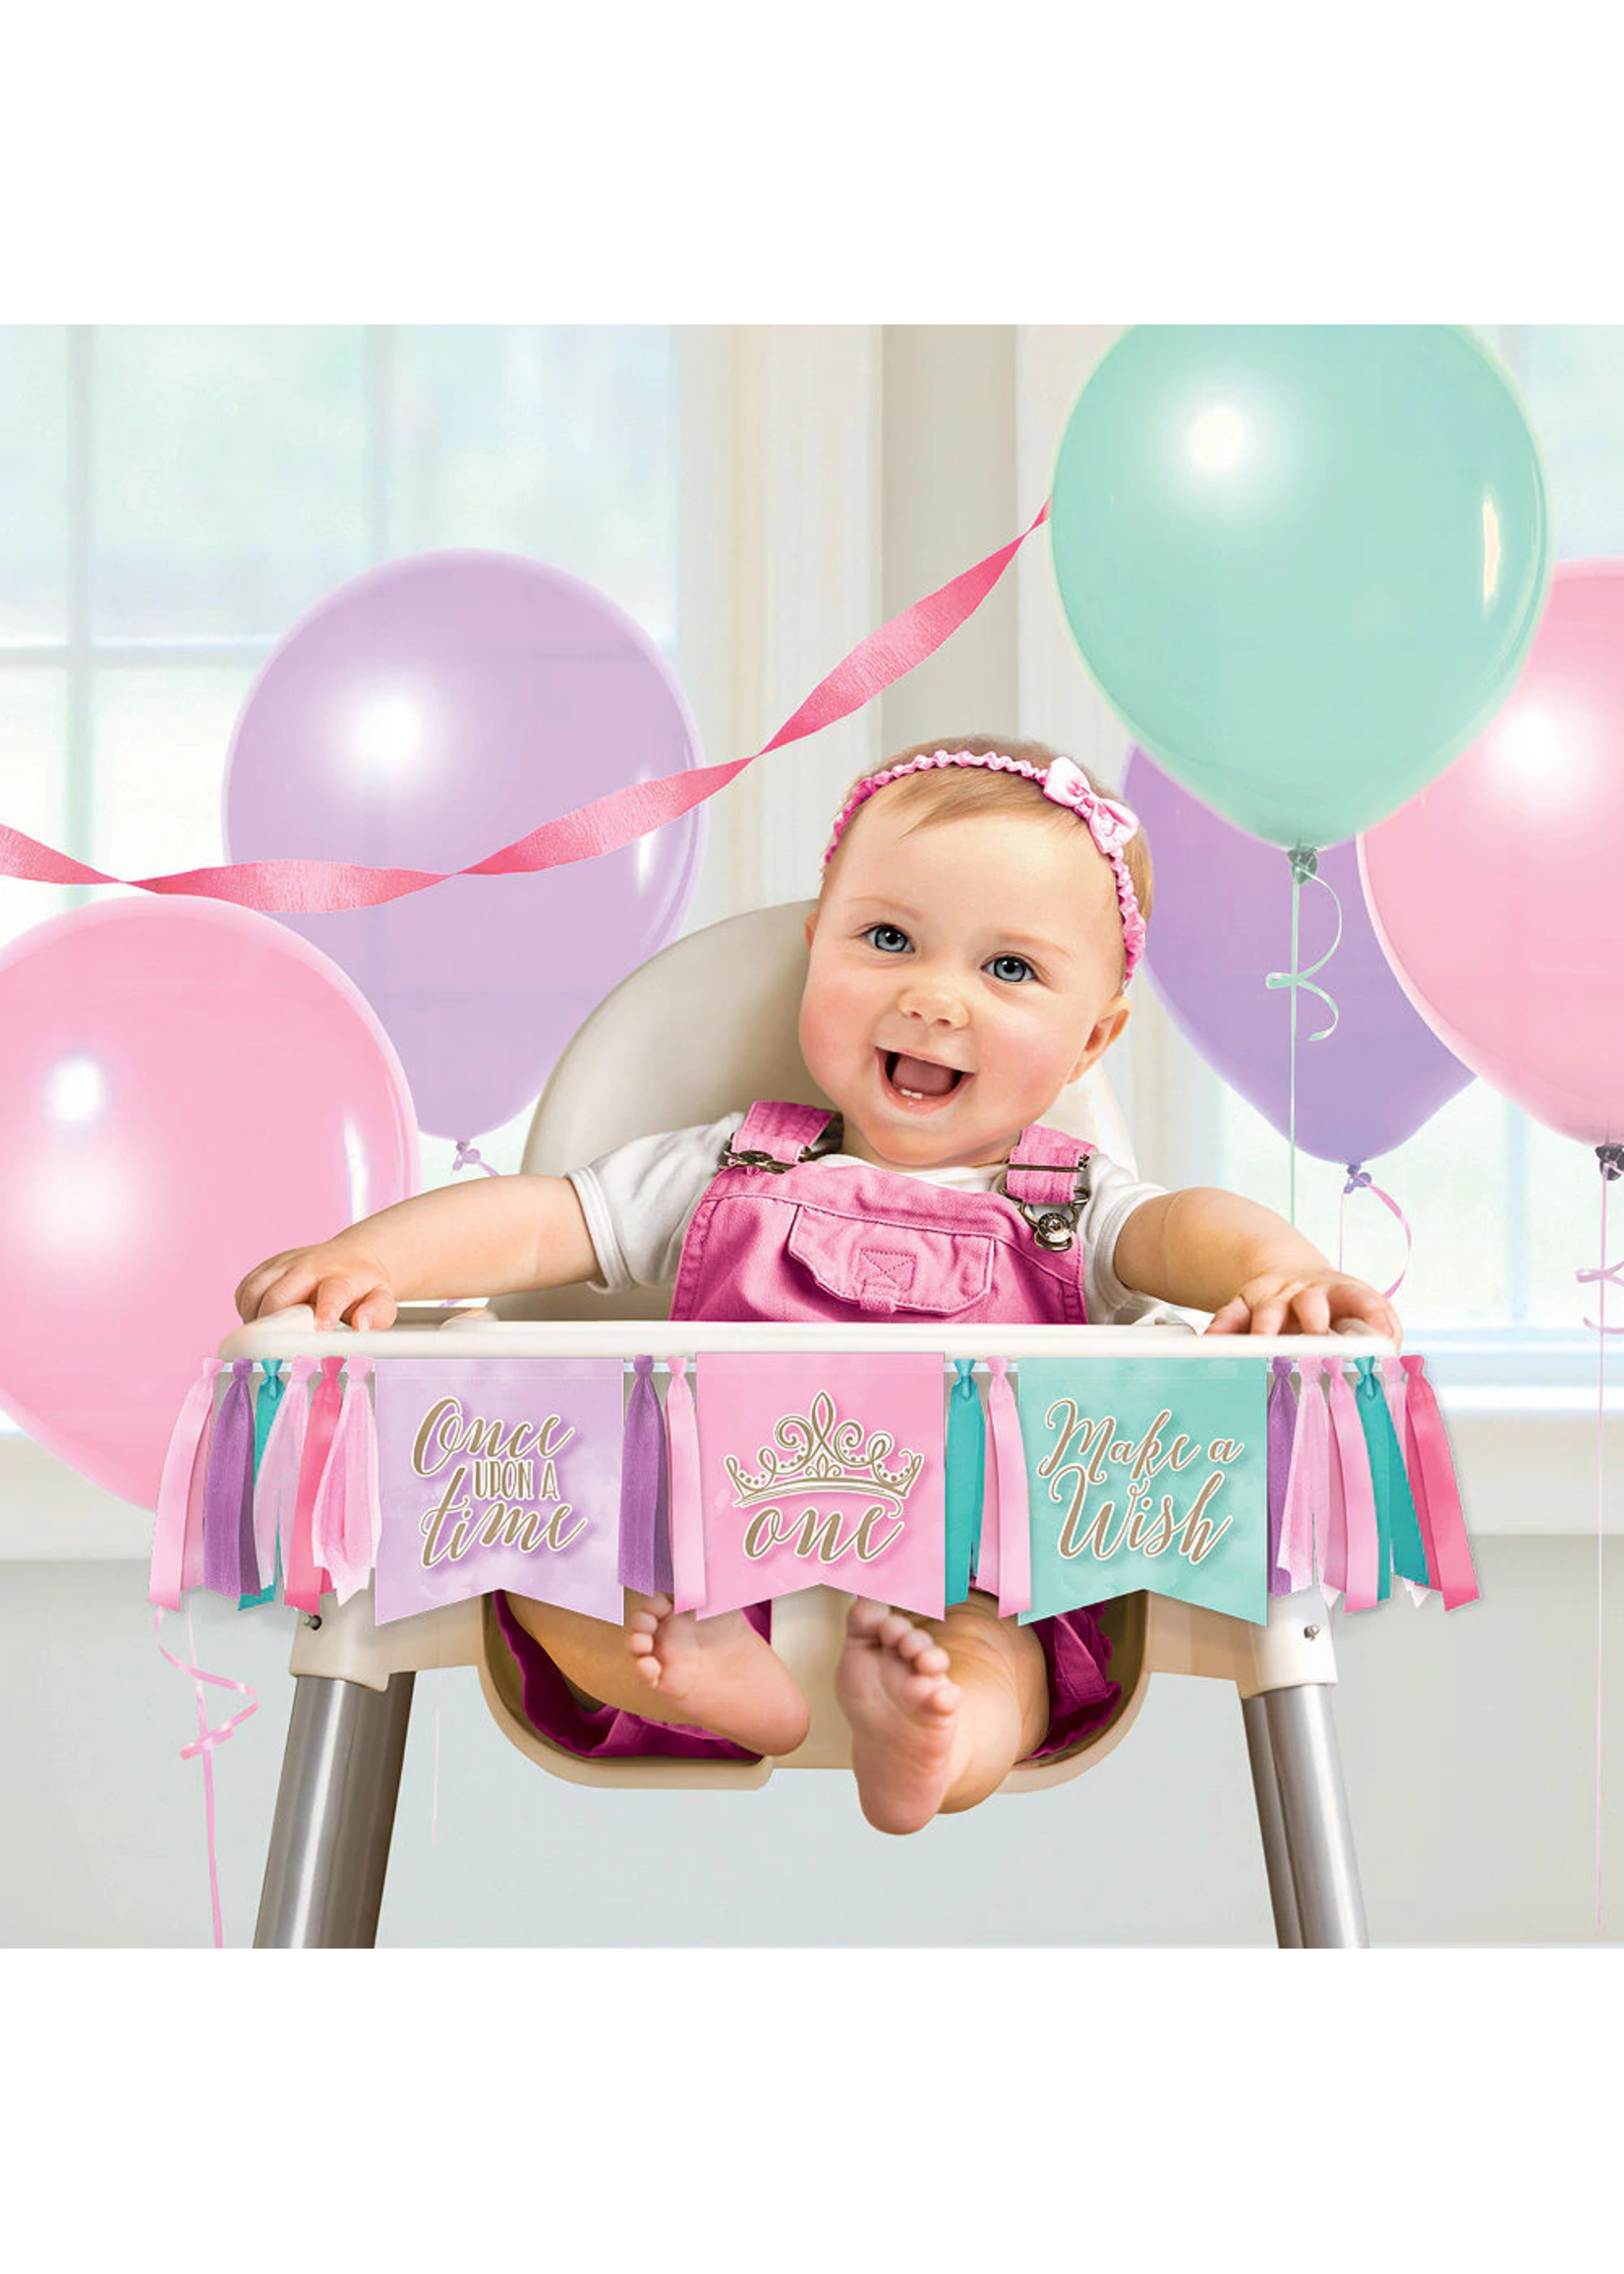 Disney Princess Once Upon a Time 1st Birthday High Chair Banner